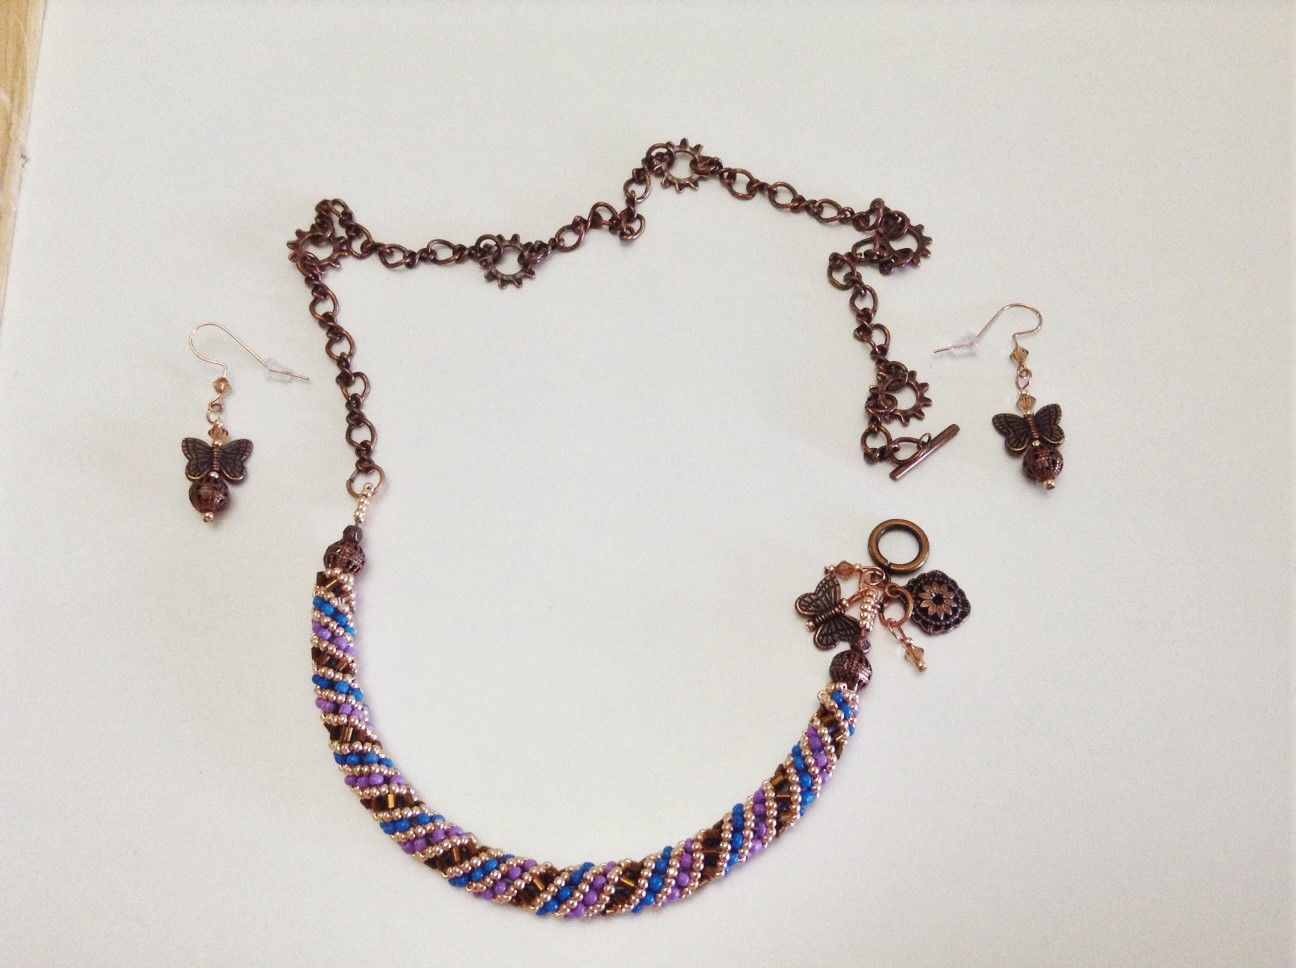 Spiral, Copper Chain, Charms, Crystals